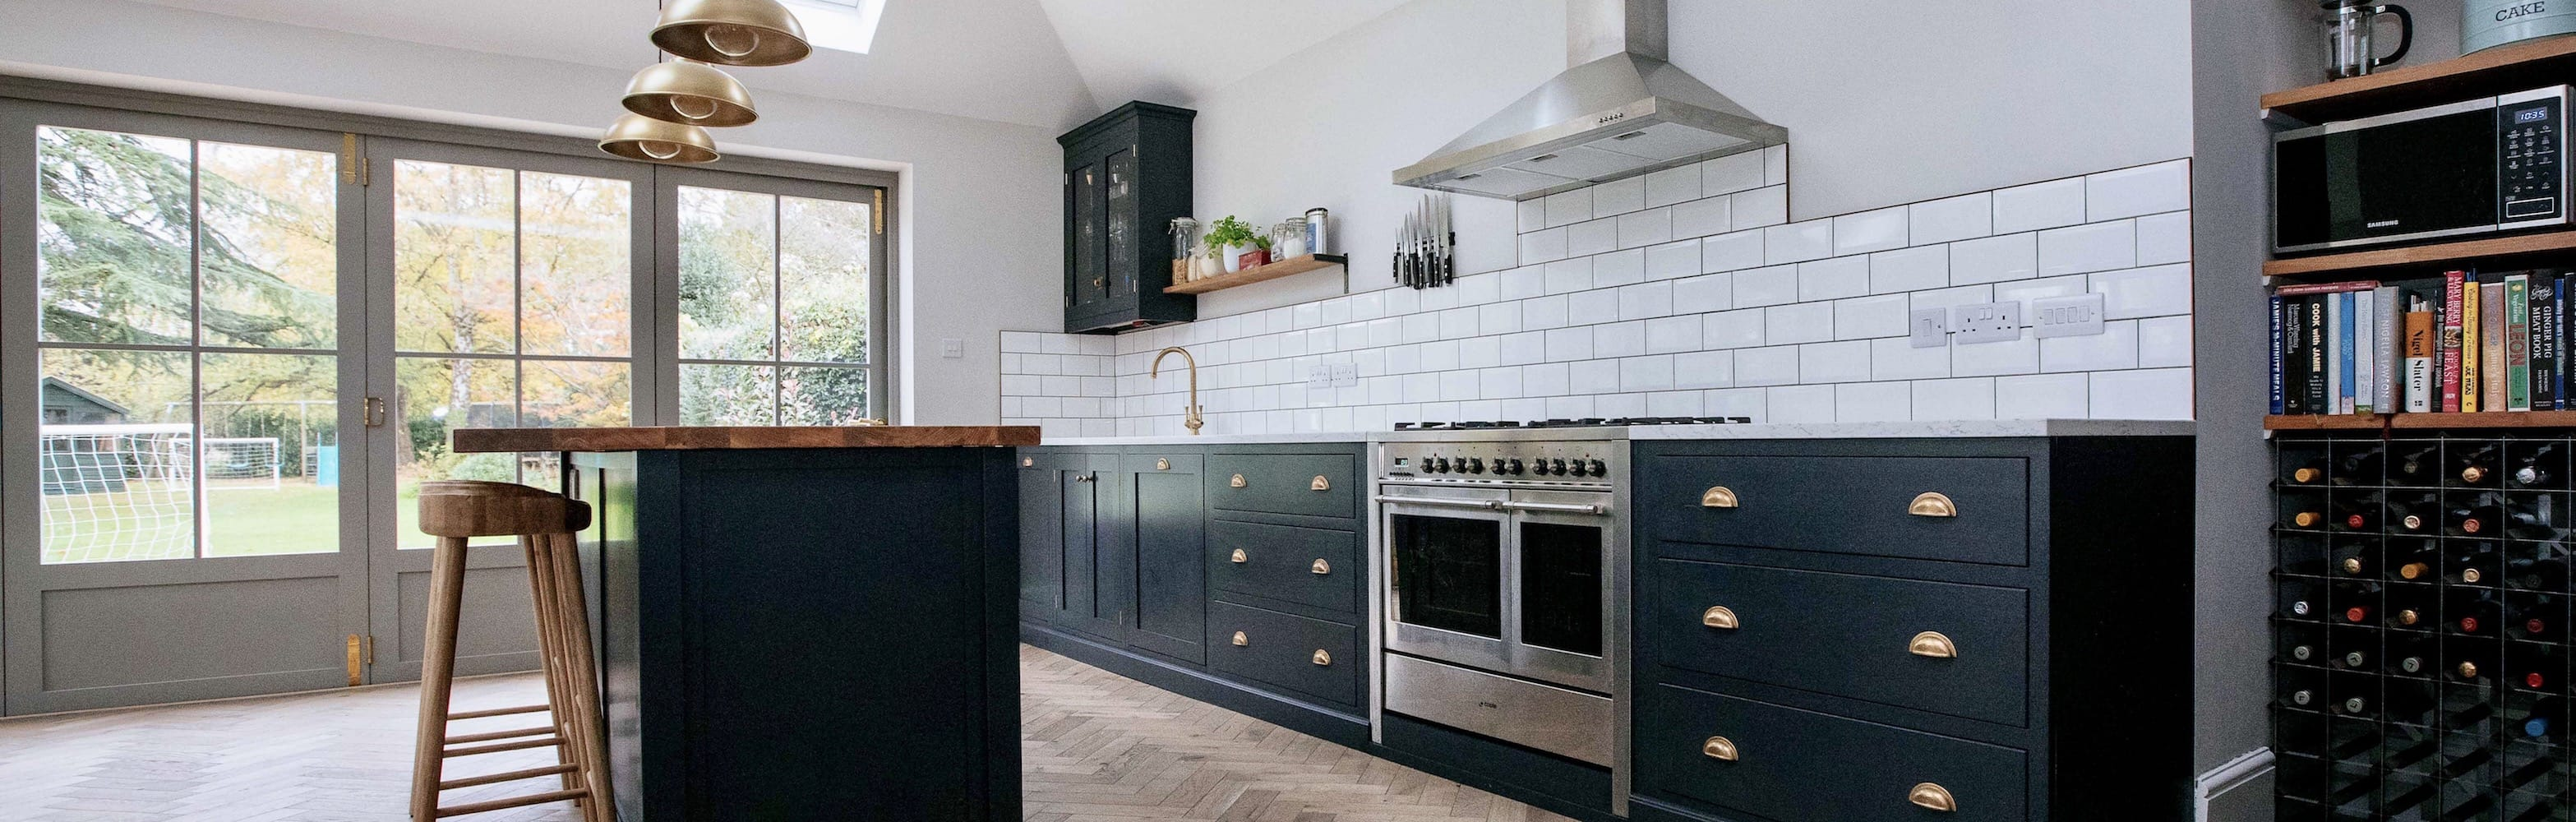 Ormonde Kitchen Extension Parquet